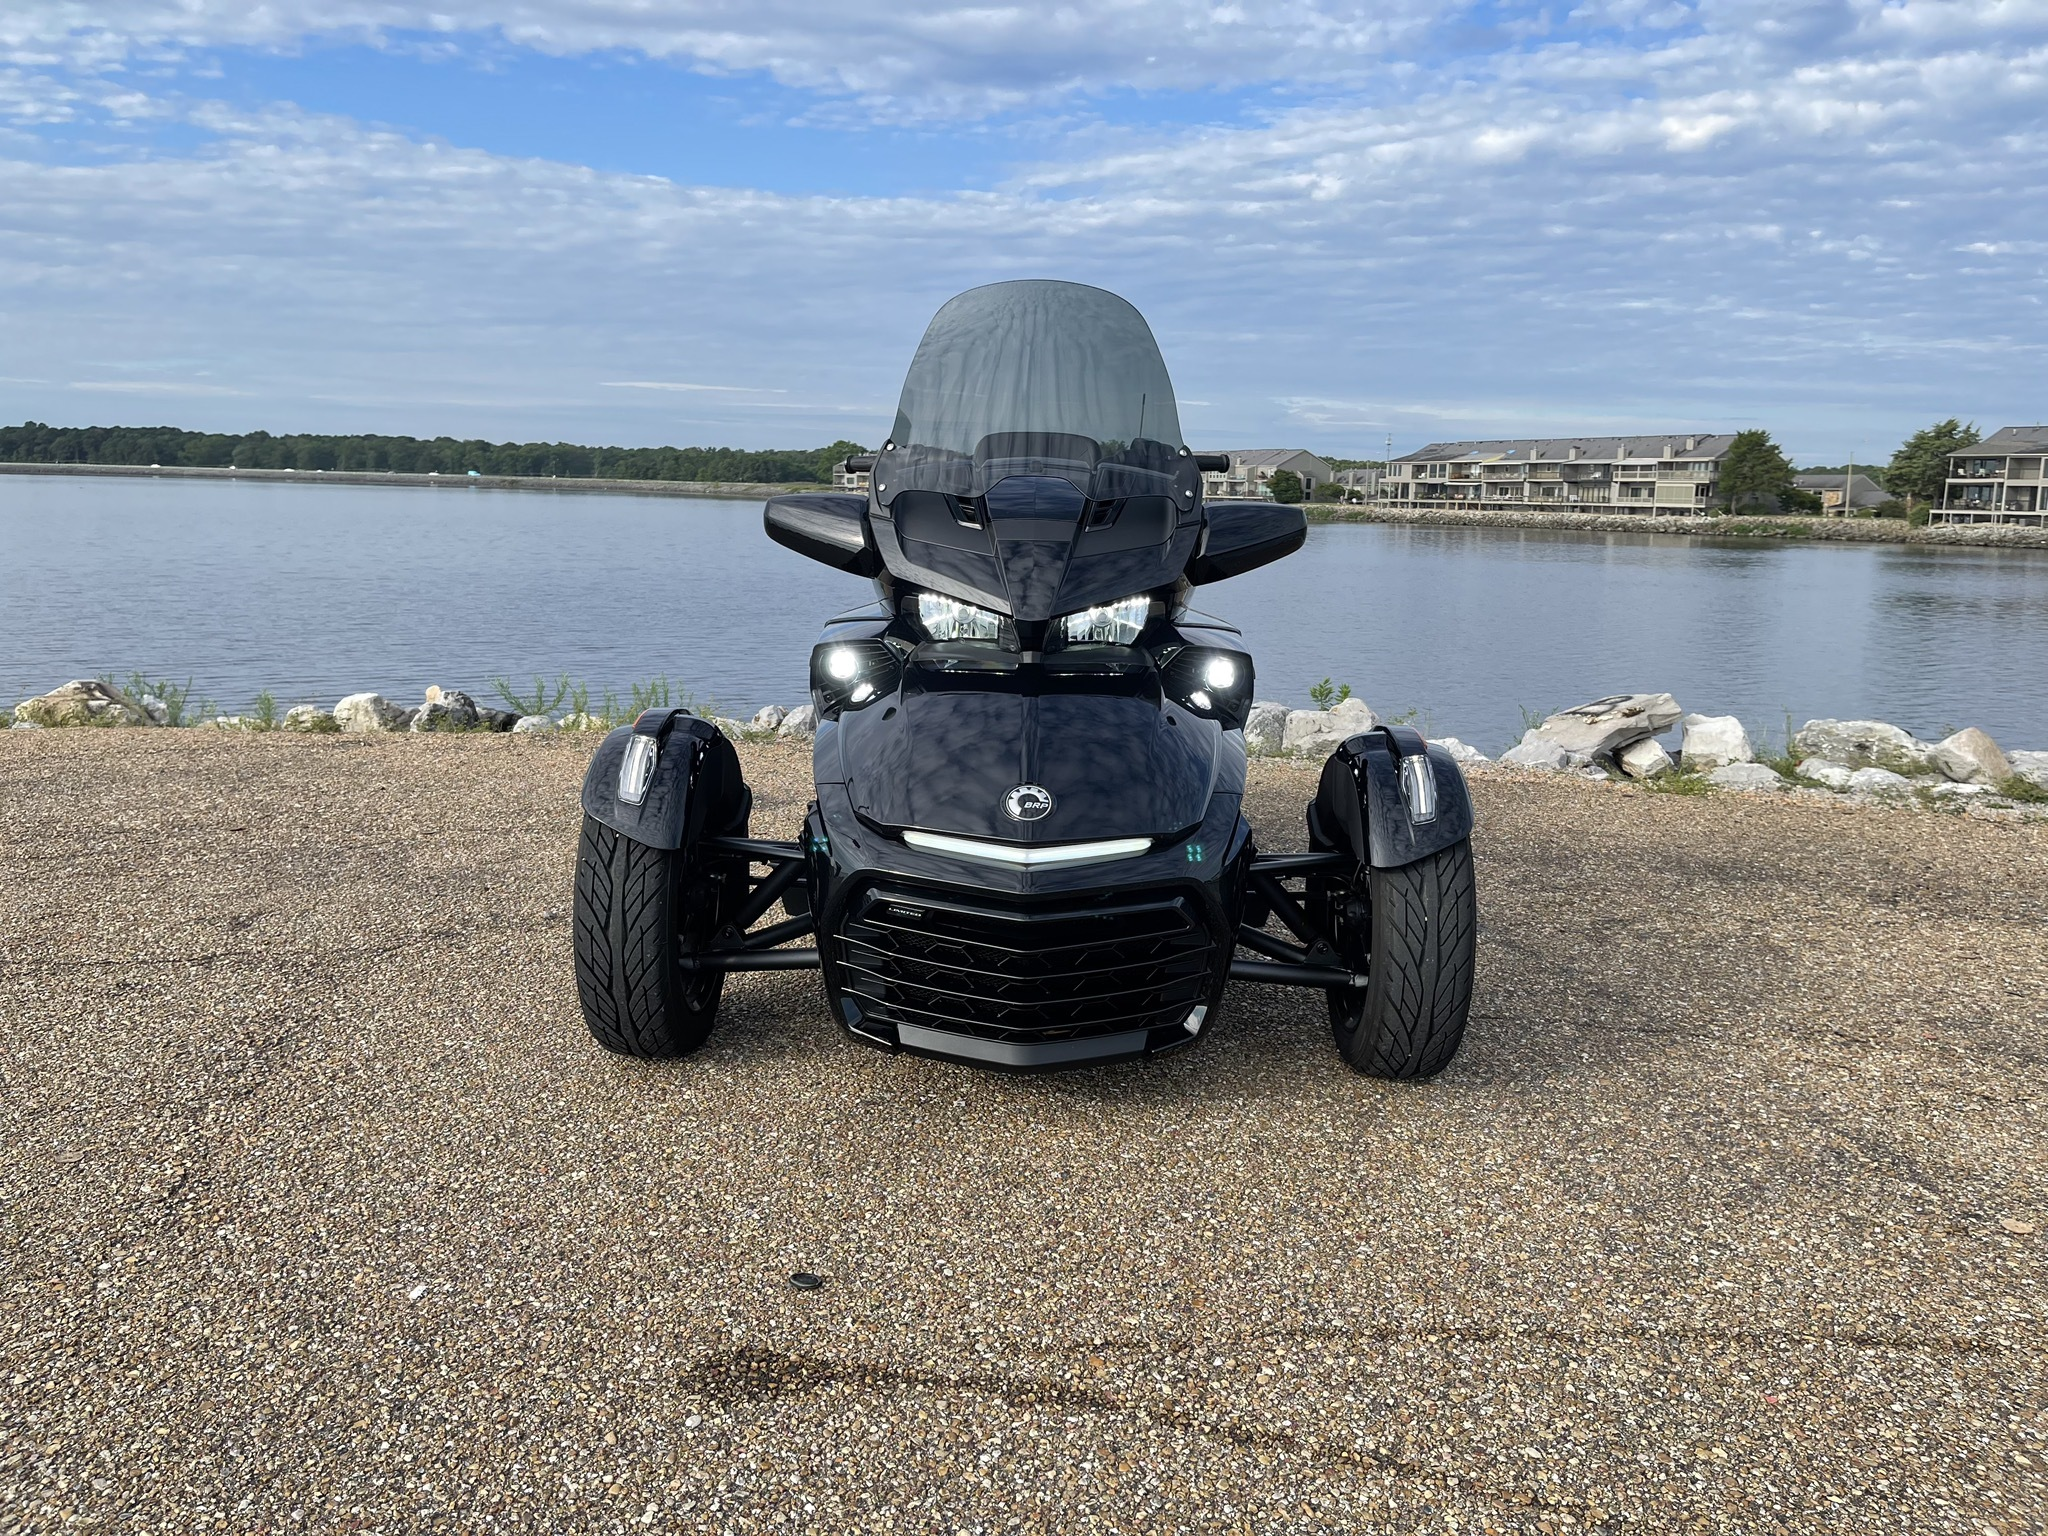 Photo Used 2020 Can-Am Trike Motorcycle  $22500